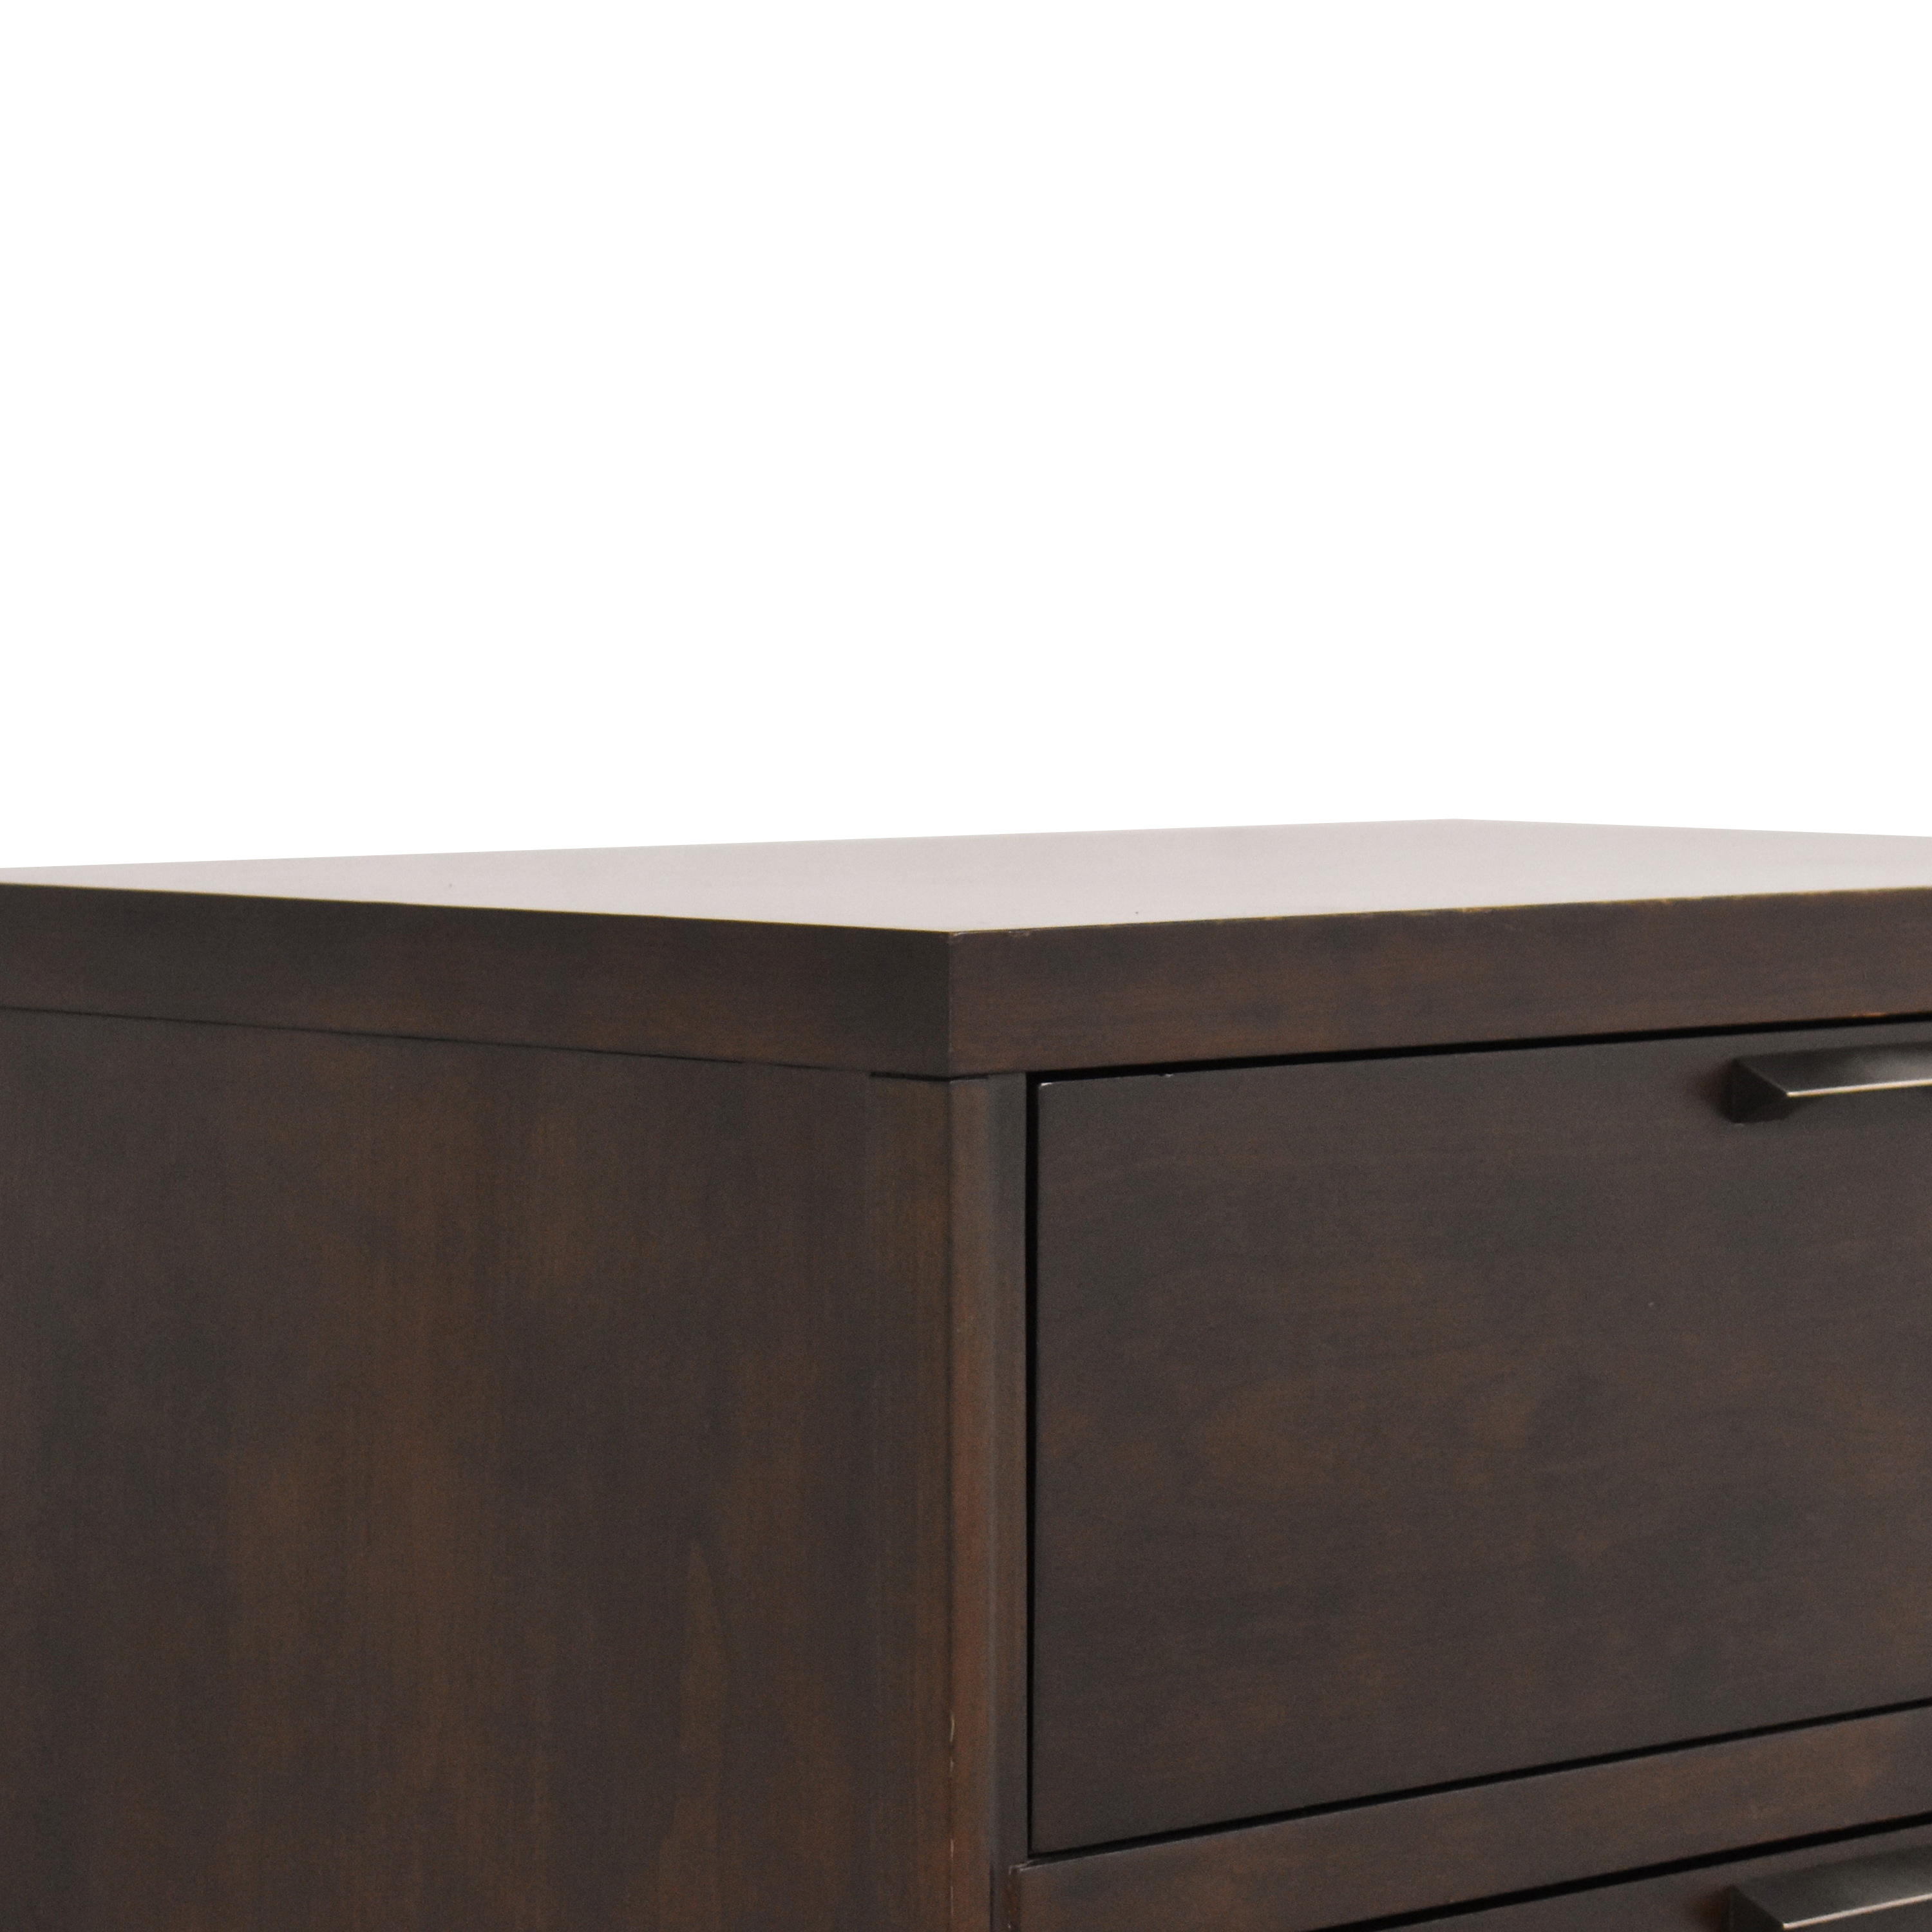 Crate & Barrel Asher Five Drawer Chest Crate & Barrel